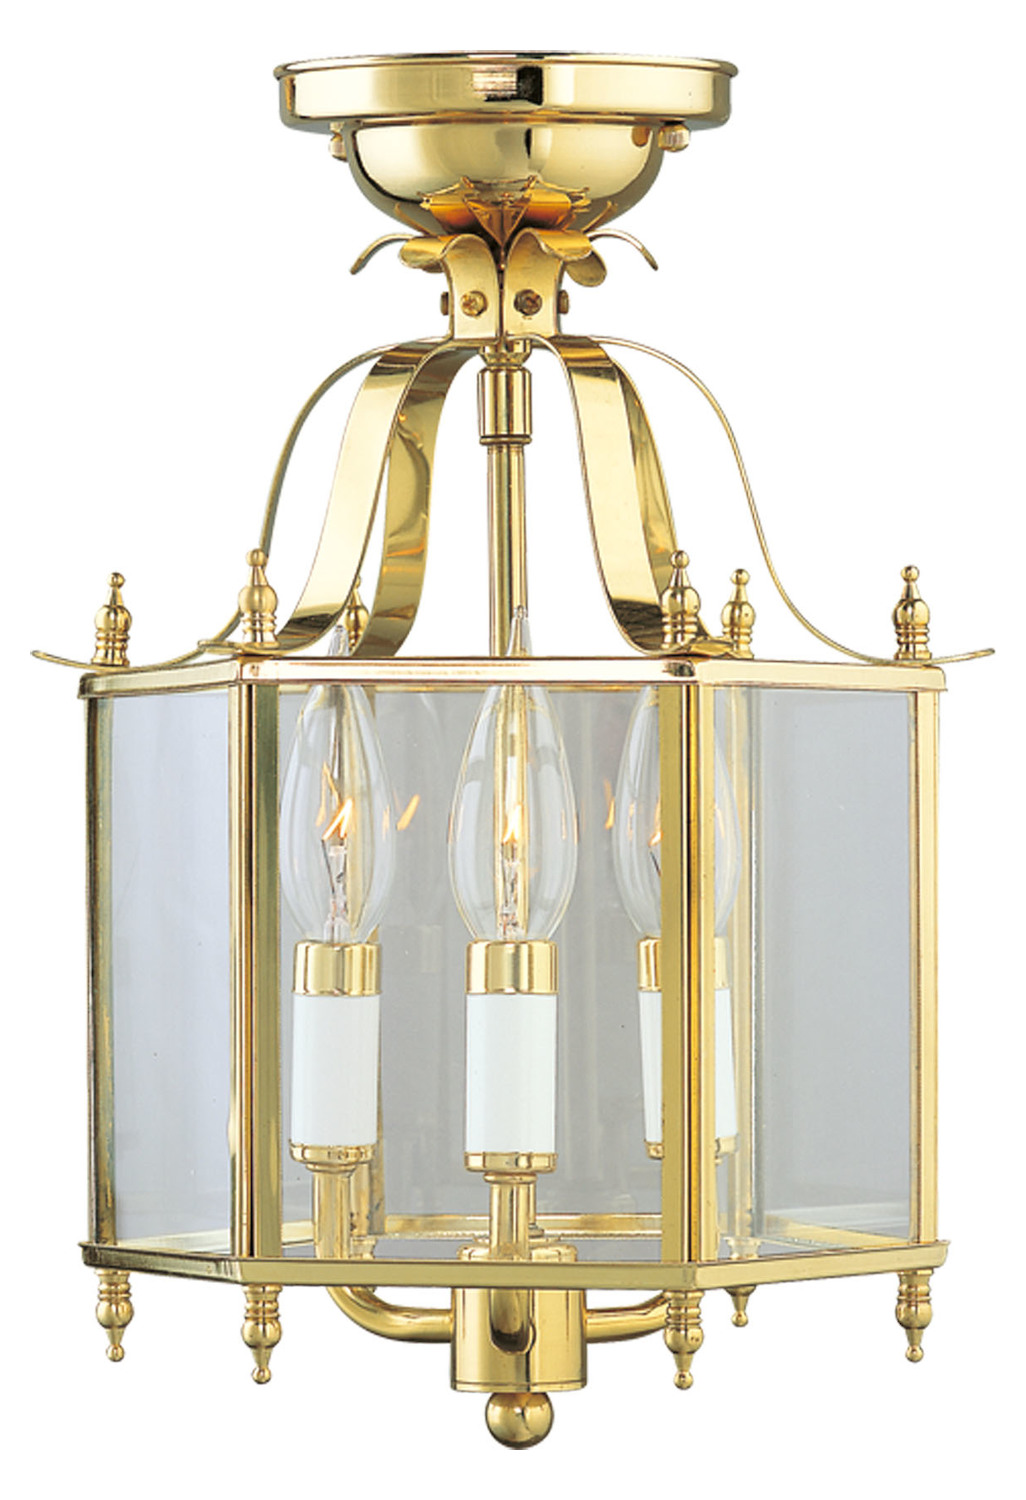 Foyer Semi Flush Mount Lighting : Livex lighting polished brass foyer hall semi flush mount